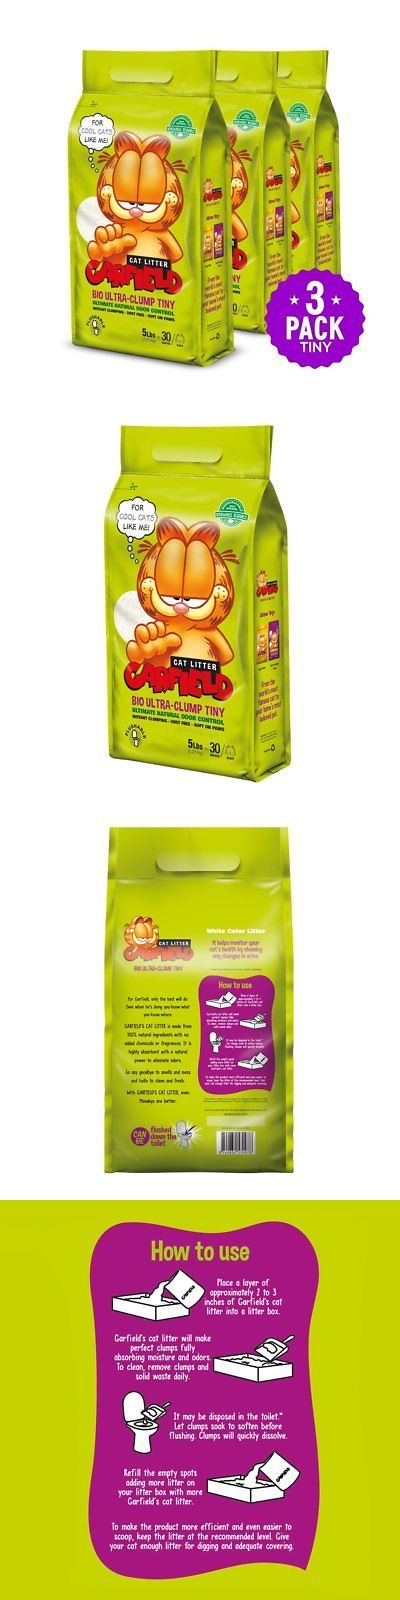 Litter 116363 Garfield Cat Litter All Natural Fast Clumping Purrfect For Multi Cat Homes Buy It Now Only 22 4 On Eb Cat Litter Garfield Cat Garfield